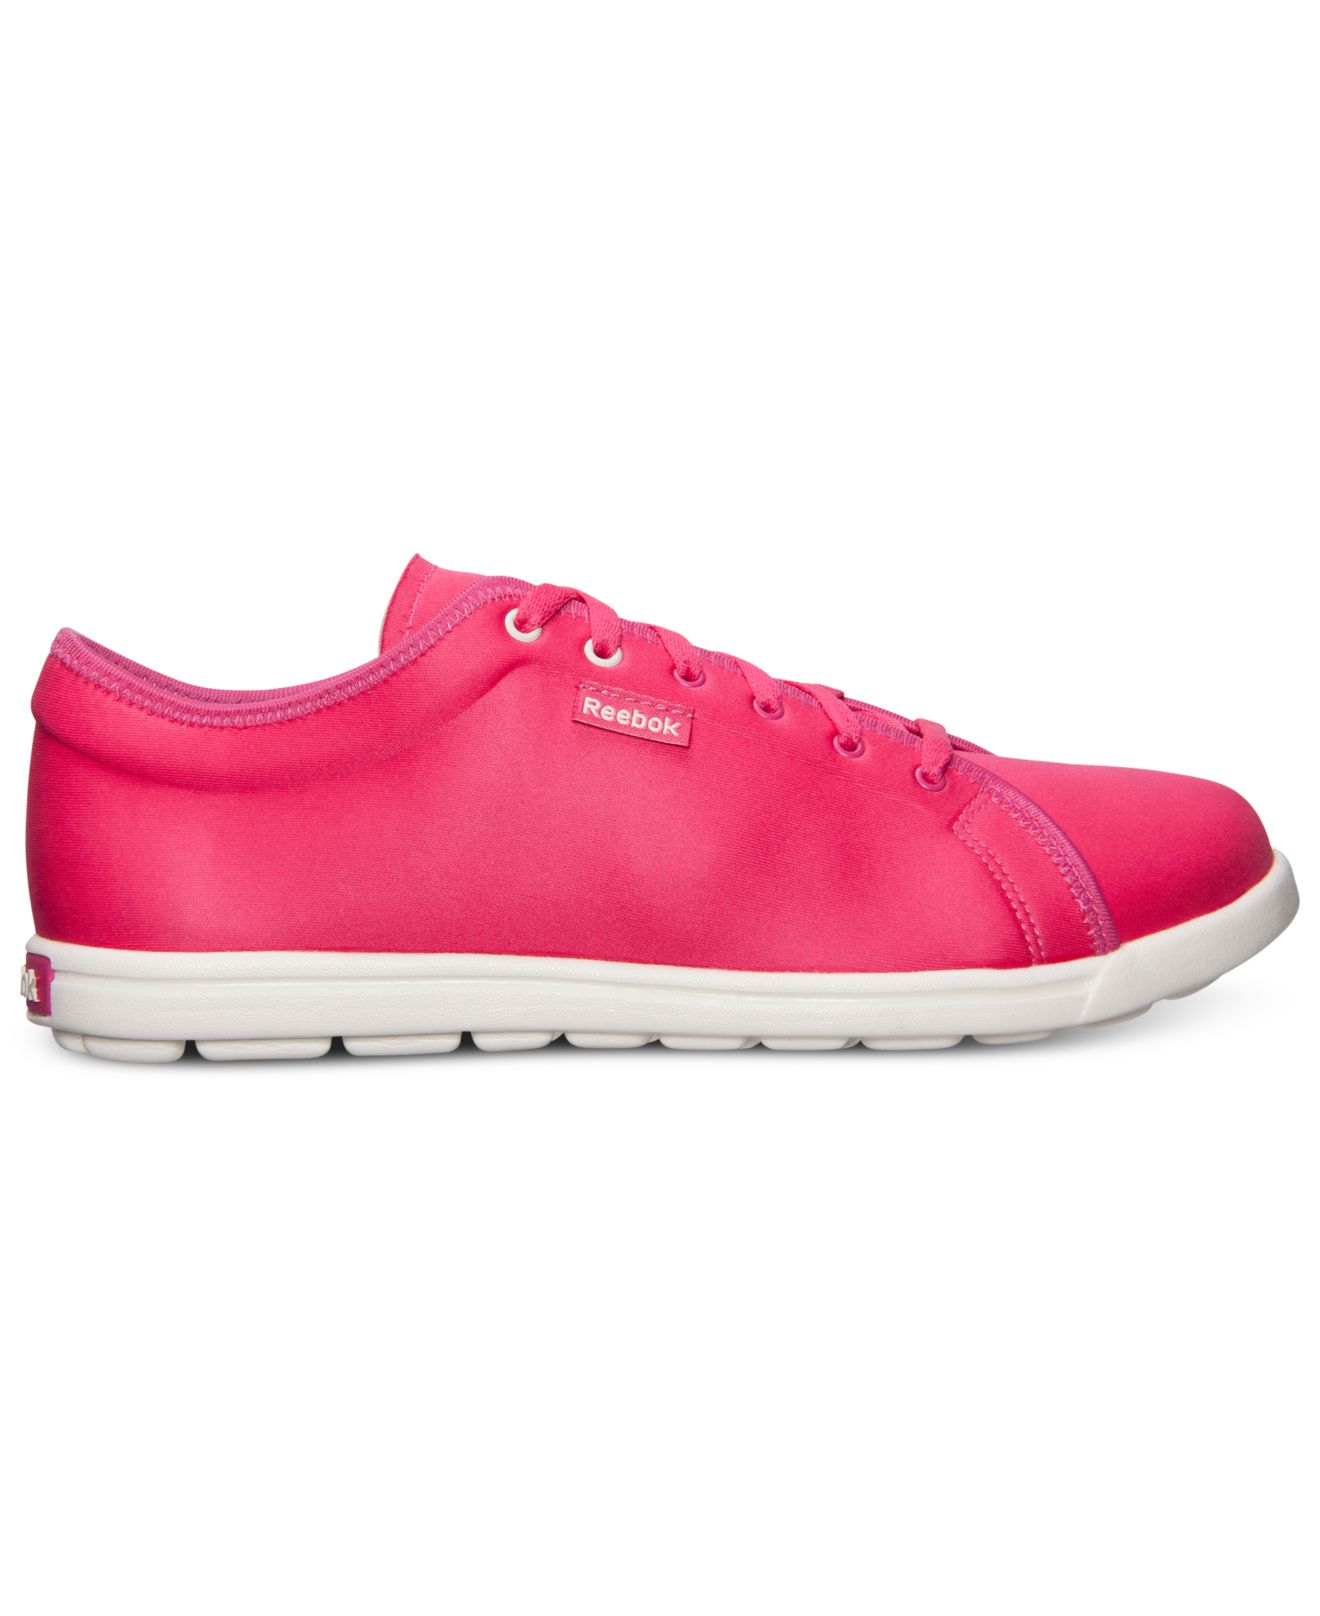 Reebok Skyscape Runaround   Women S Casual Shoes